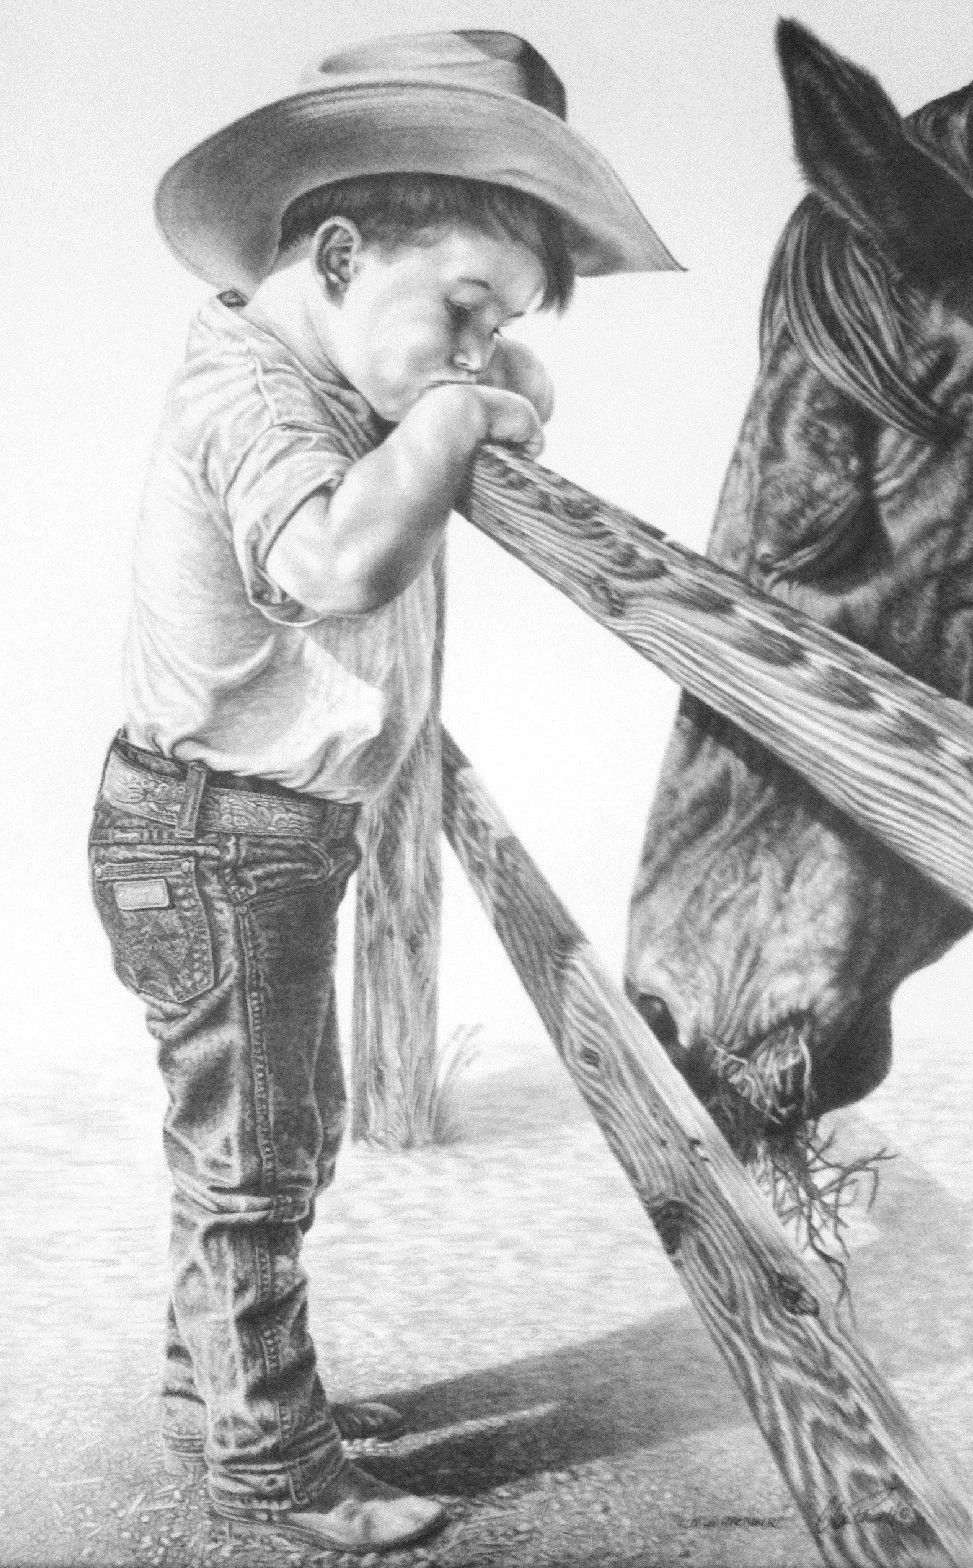 Western horse pencil drawings glen powellpencildrawingswesternart ranchinghorseskidscowboy